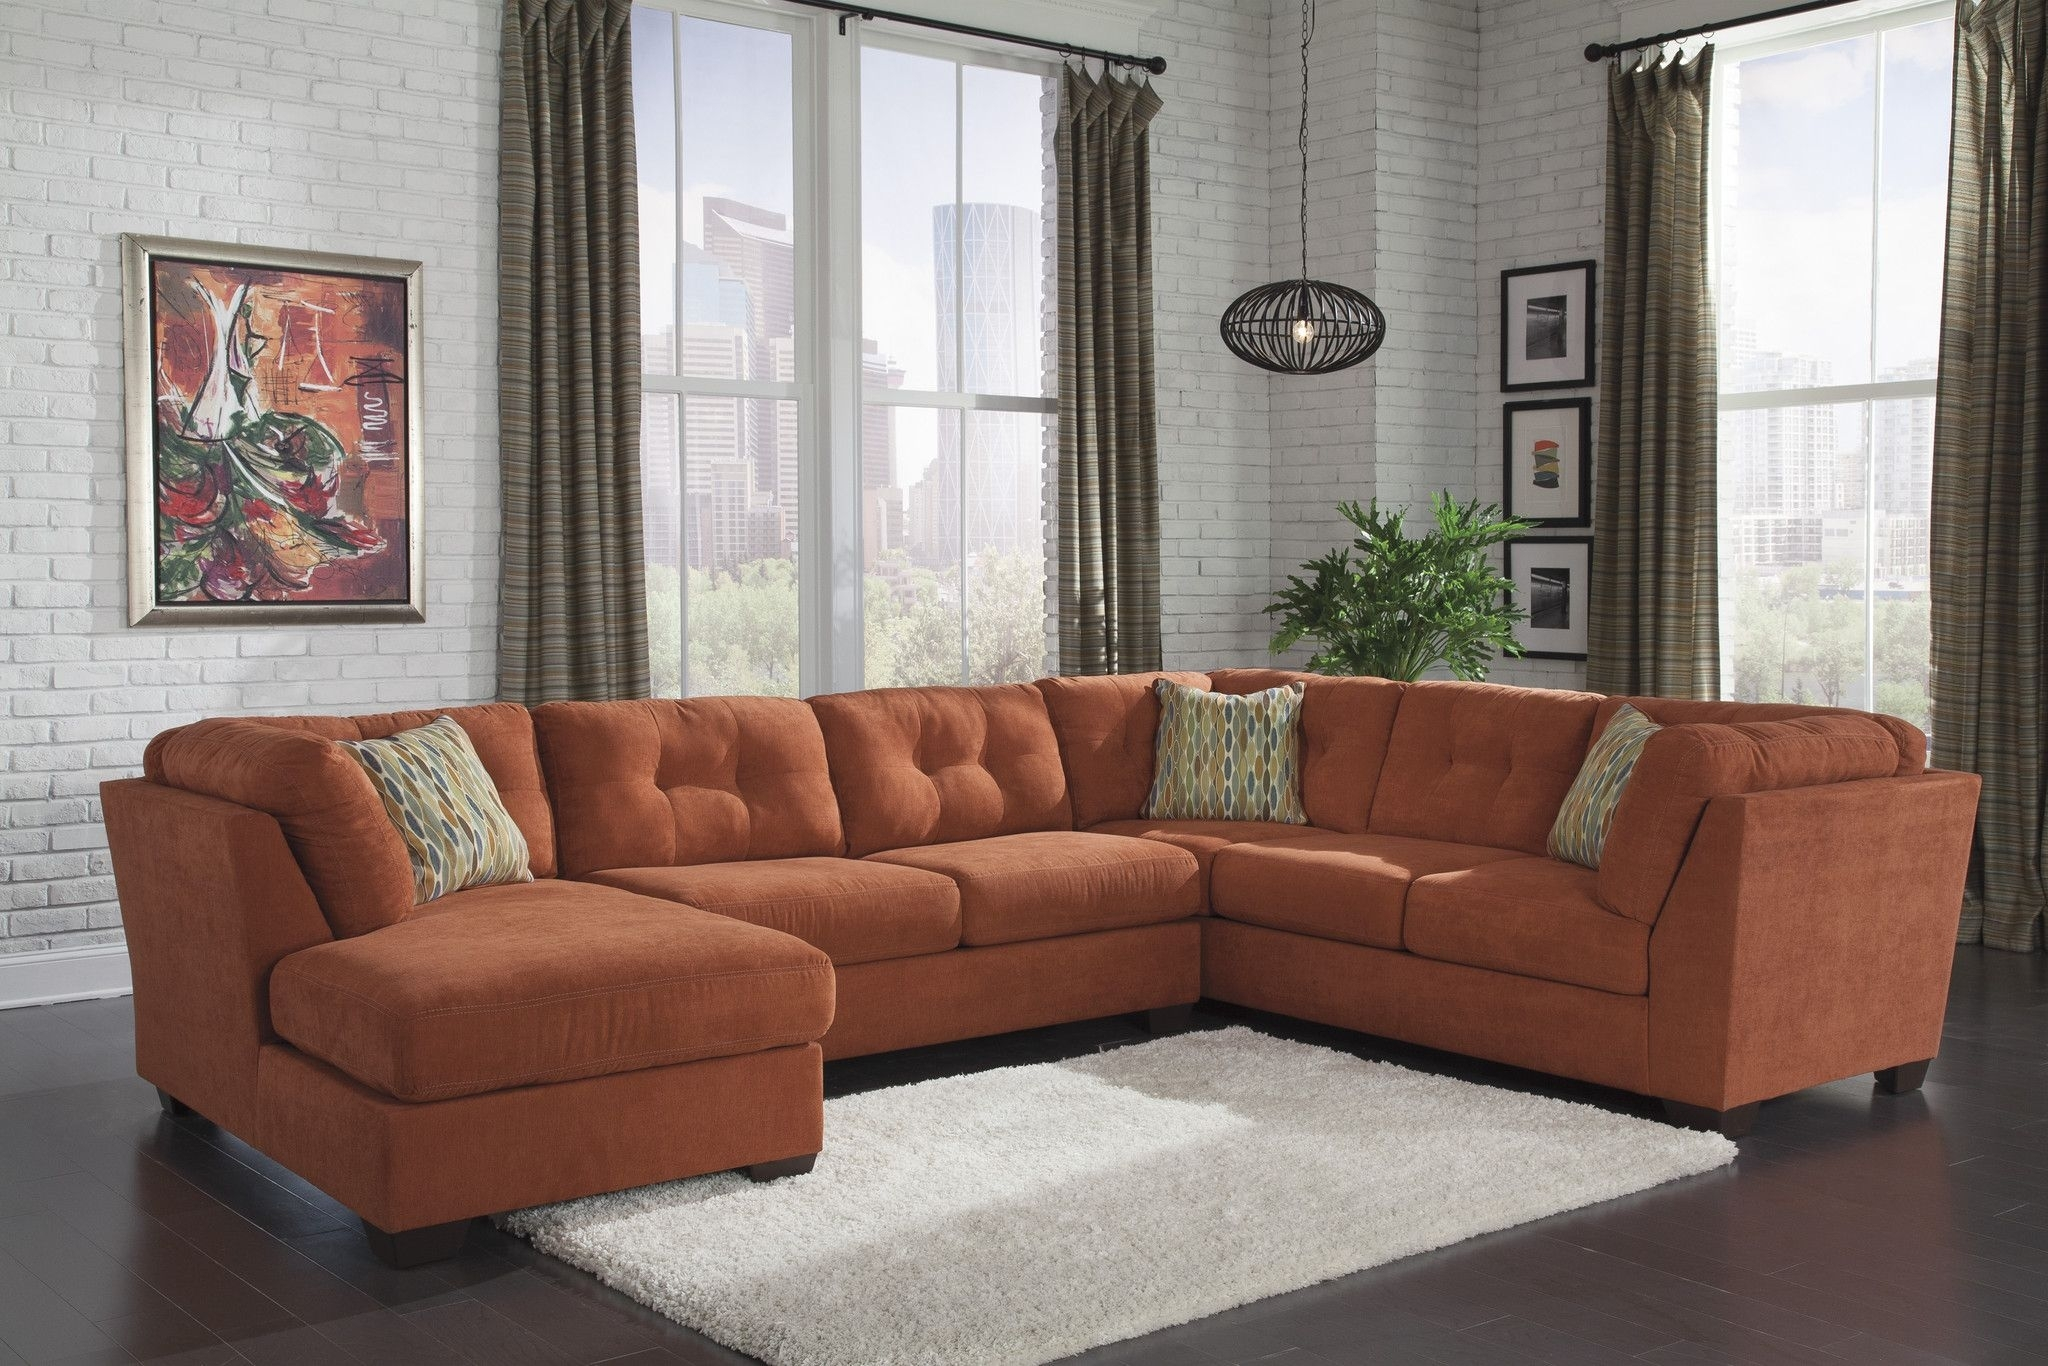 Ashley Furniture Delta City Orange Sectional Left 1970116+34+38 Pertaining To Turdur 3 Piece Sectionals With Laf Loveseat (Image 3 of 25)